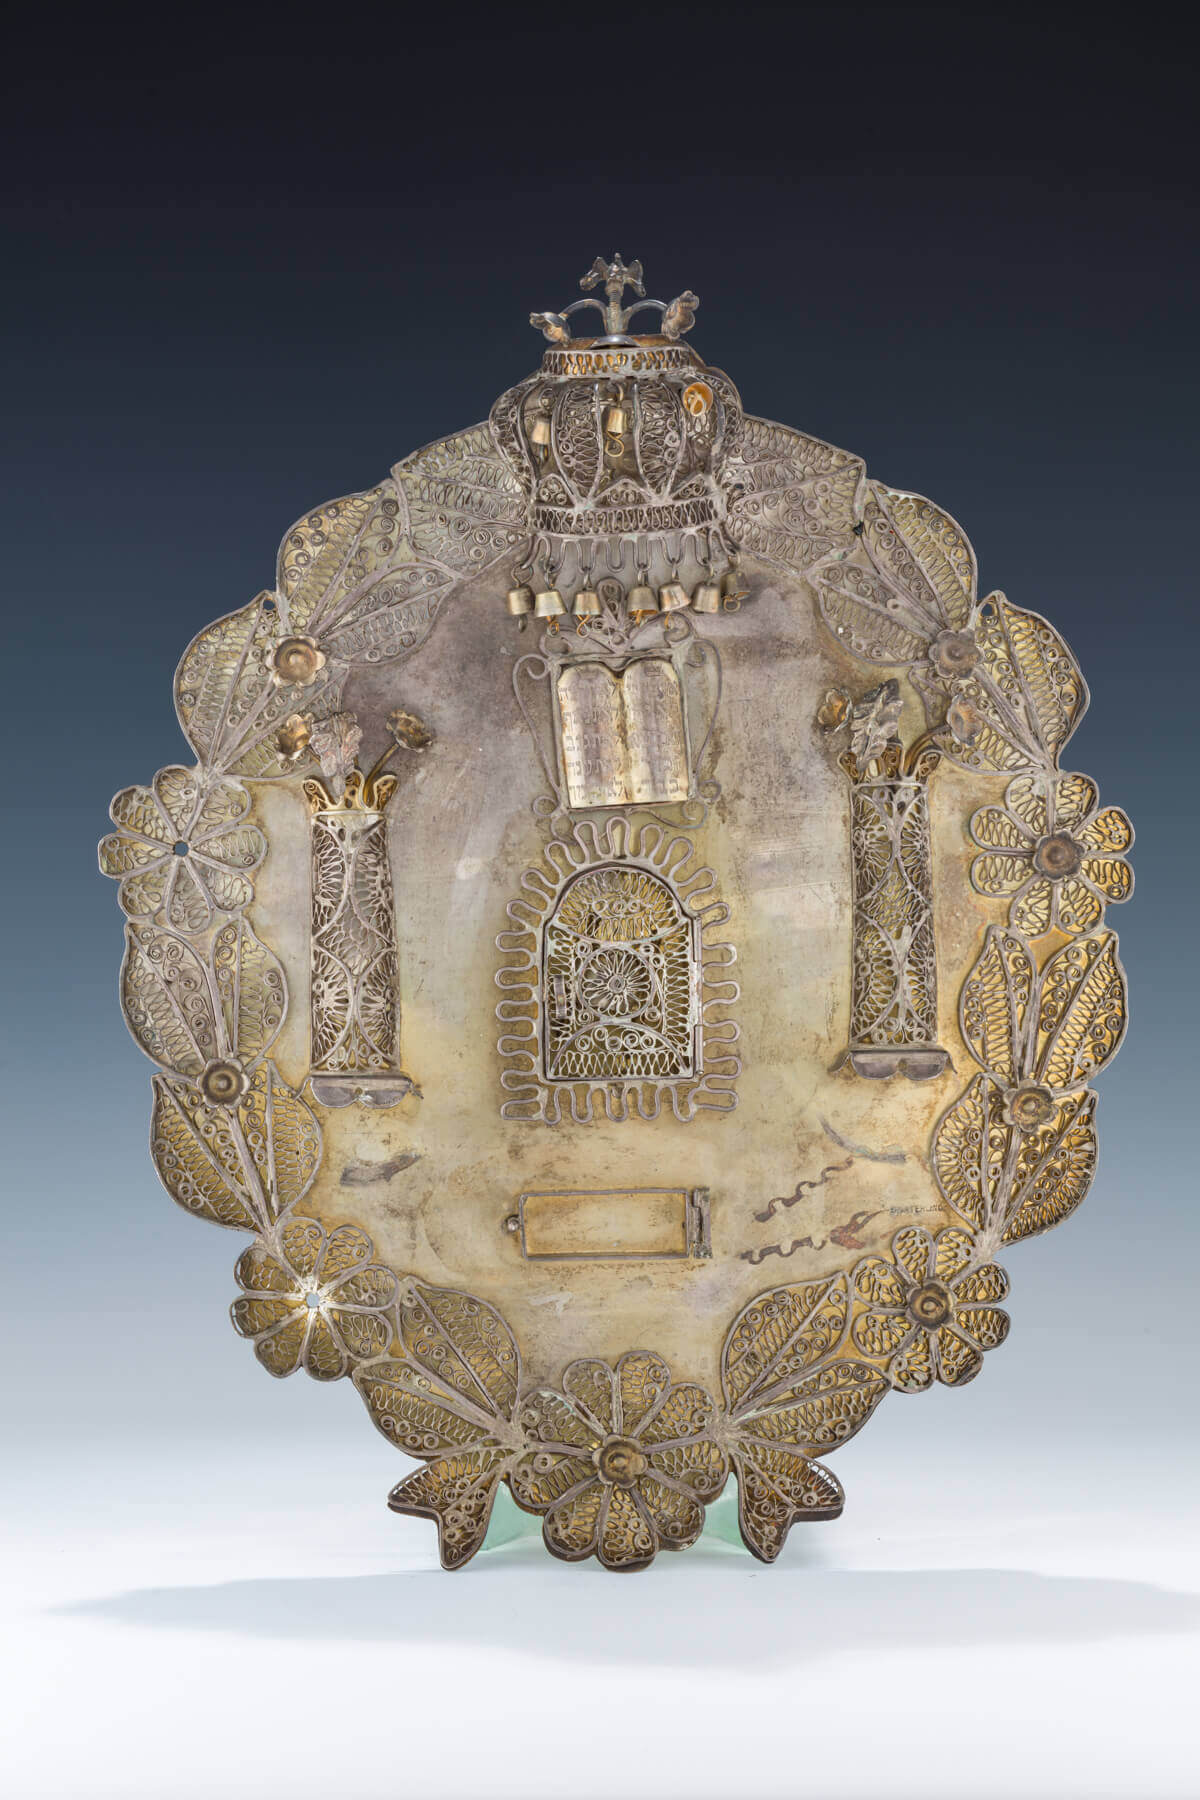 050. A LARGE SILVER TORAH SHIELD